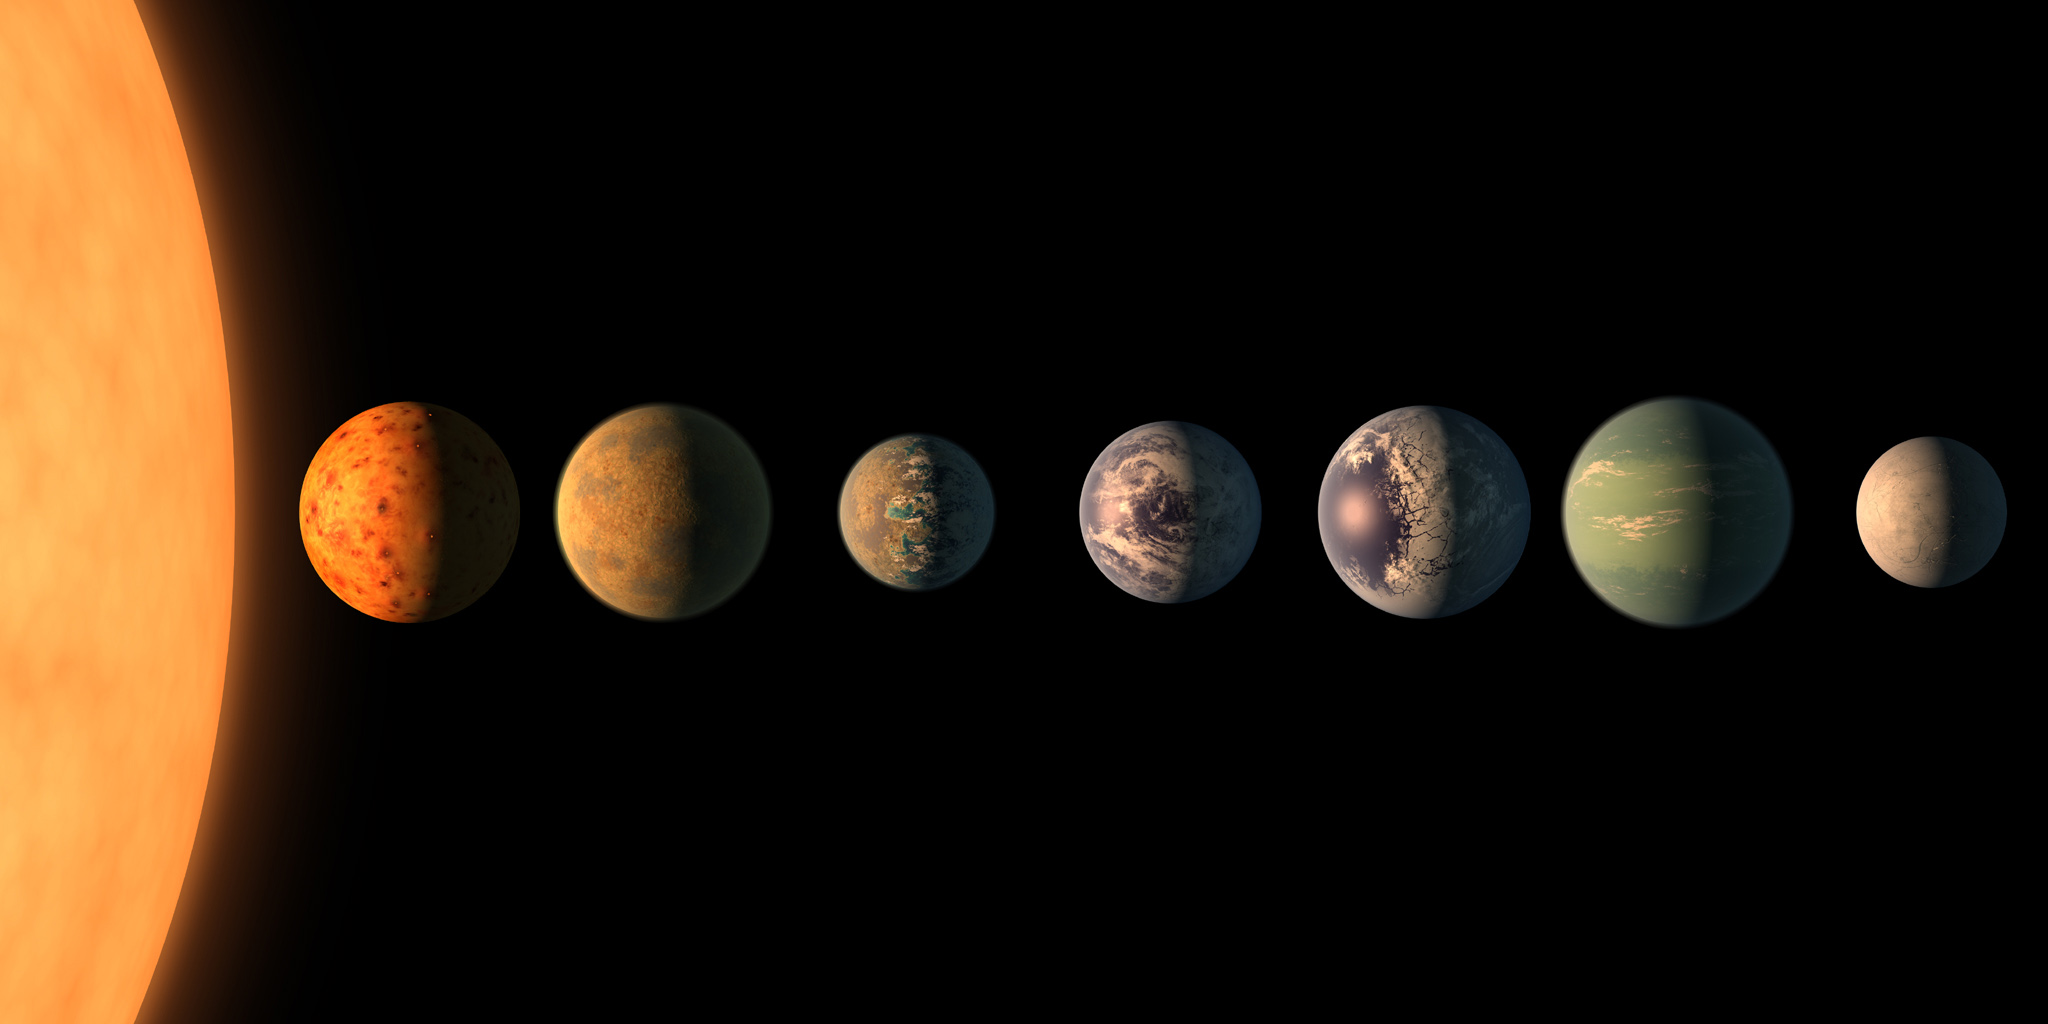 This artist's concept shows what each of the TRAPPIST-1 planets may look like, based on available data about their sizes, masses and orbital distances.